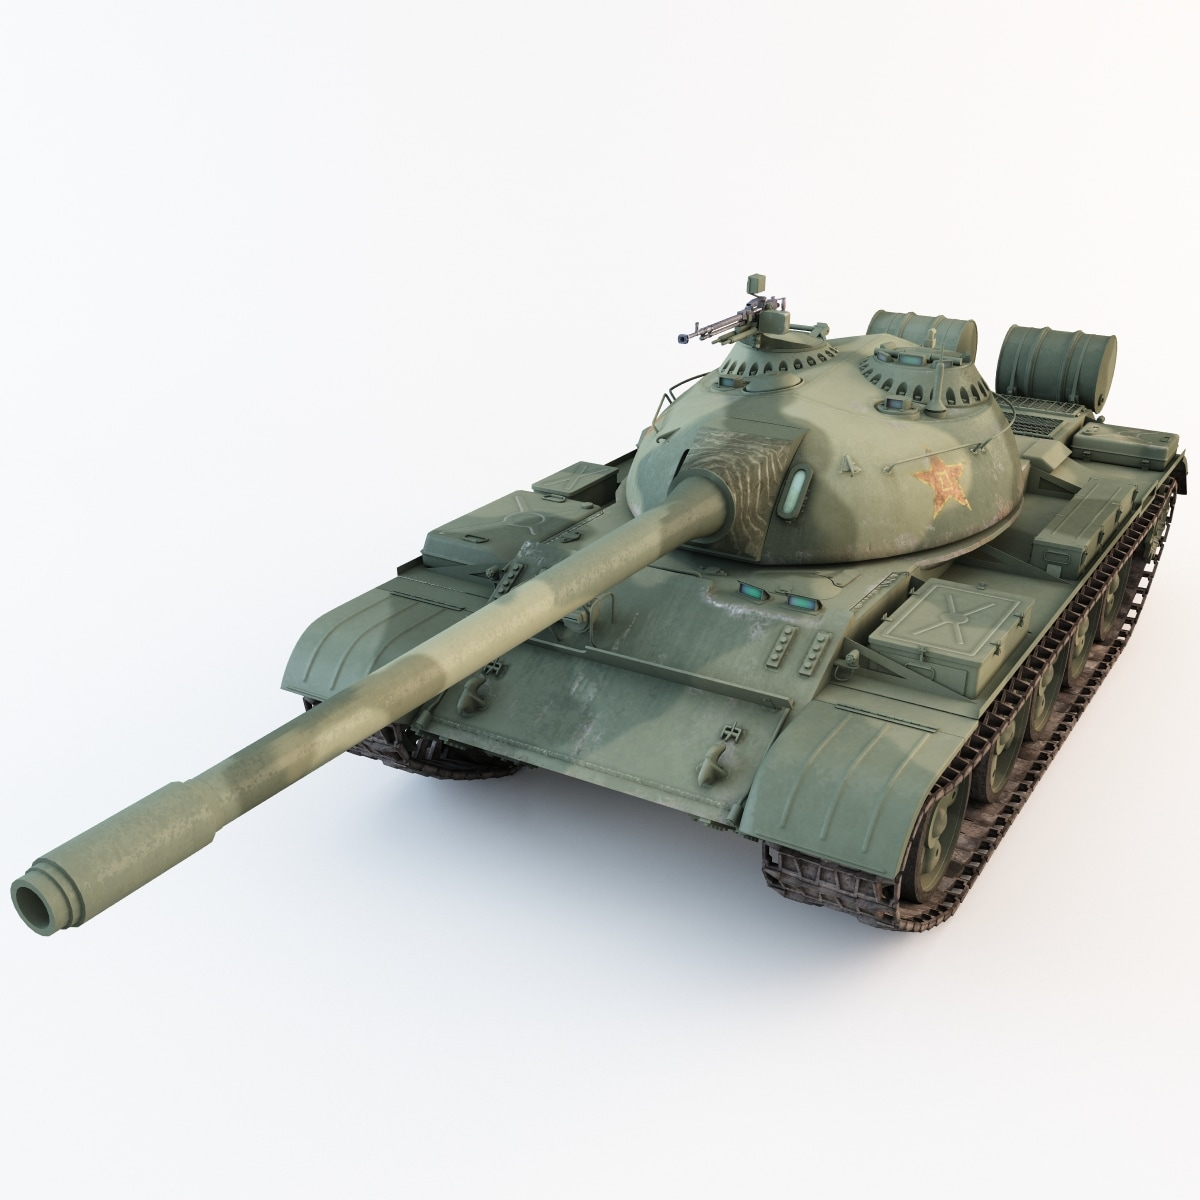 Type_59_China_Main_Battle_Tank_006.jpg